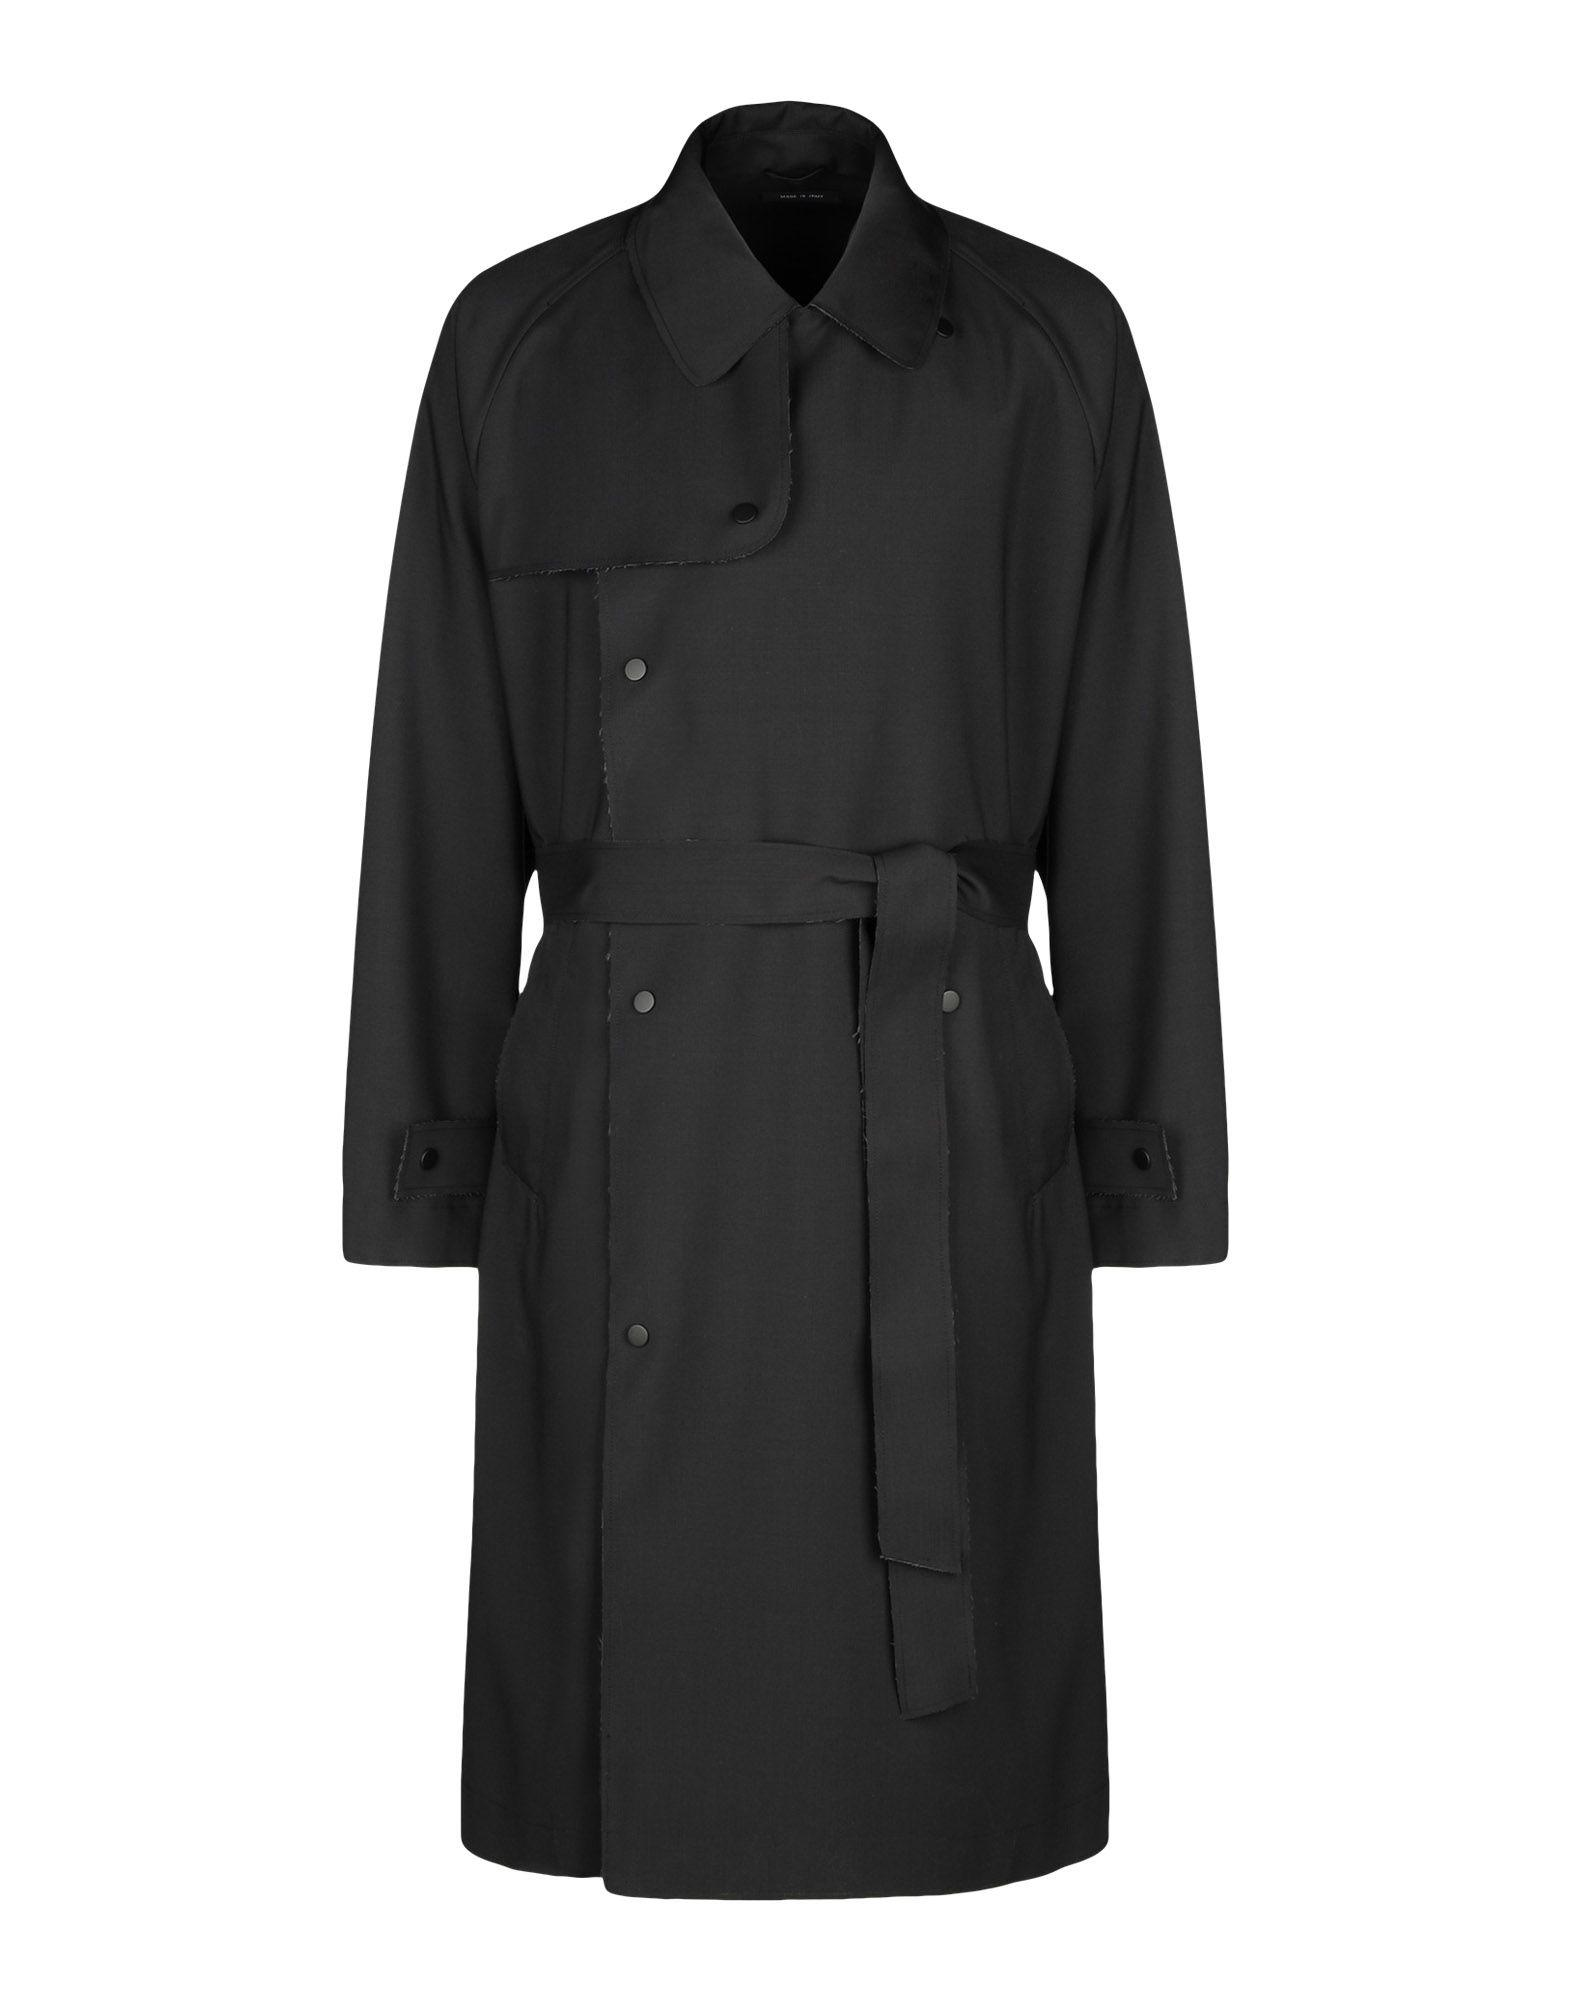 Emporio Armani Coat In Black